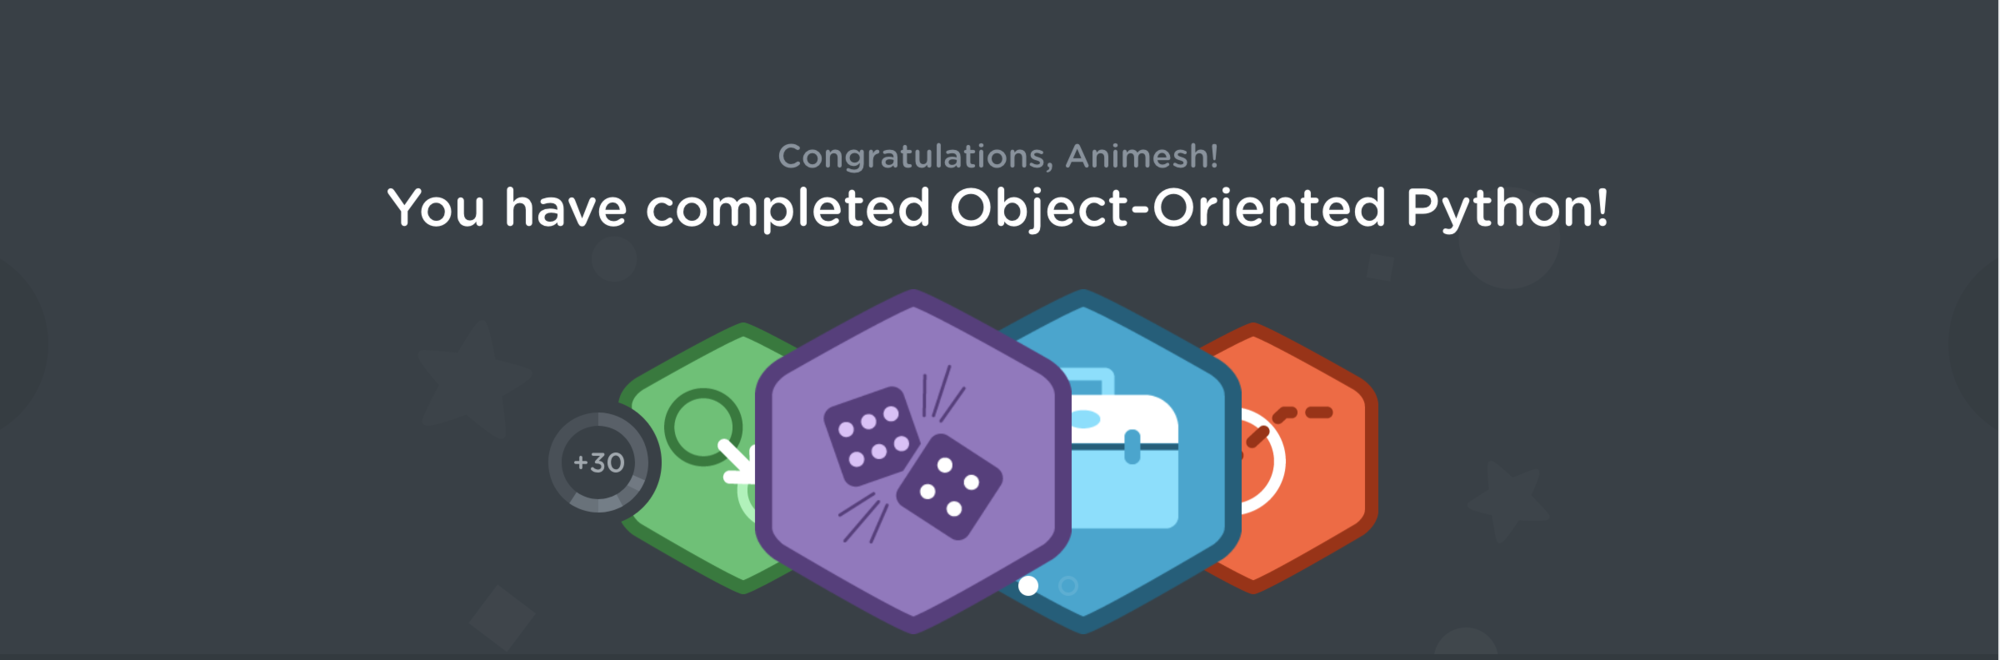 Object Oriented Python Badge.